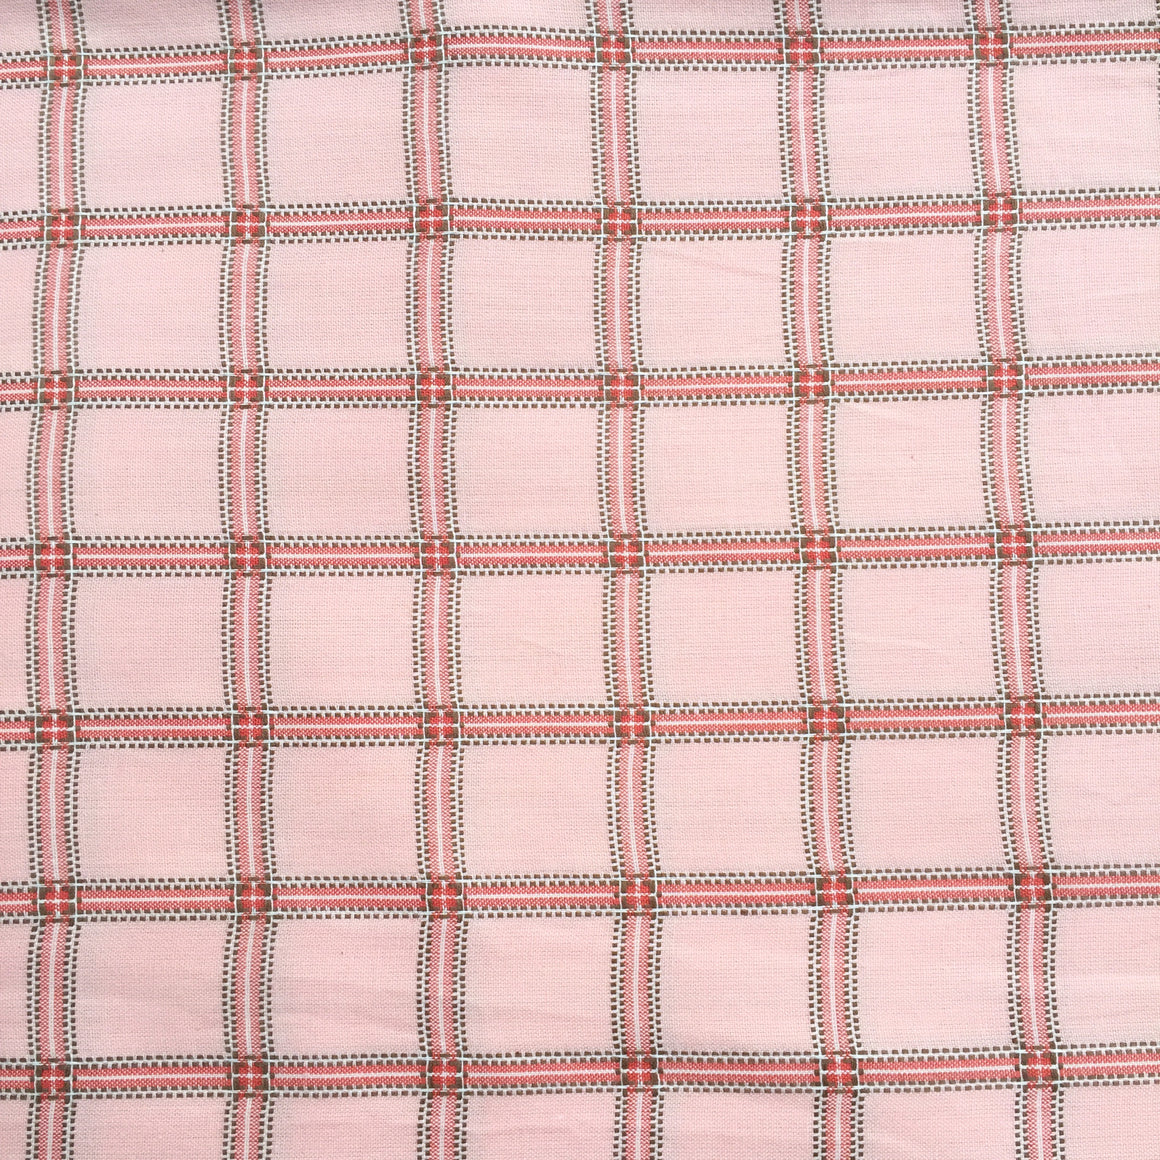 3 Sisters - Aster Manor - Summerset Pink Plaid